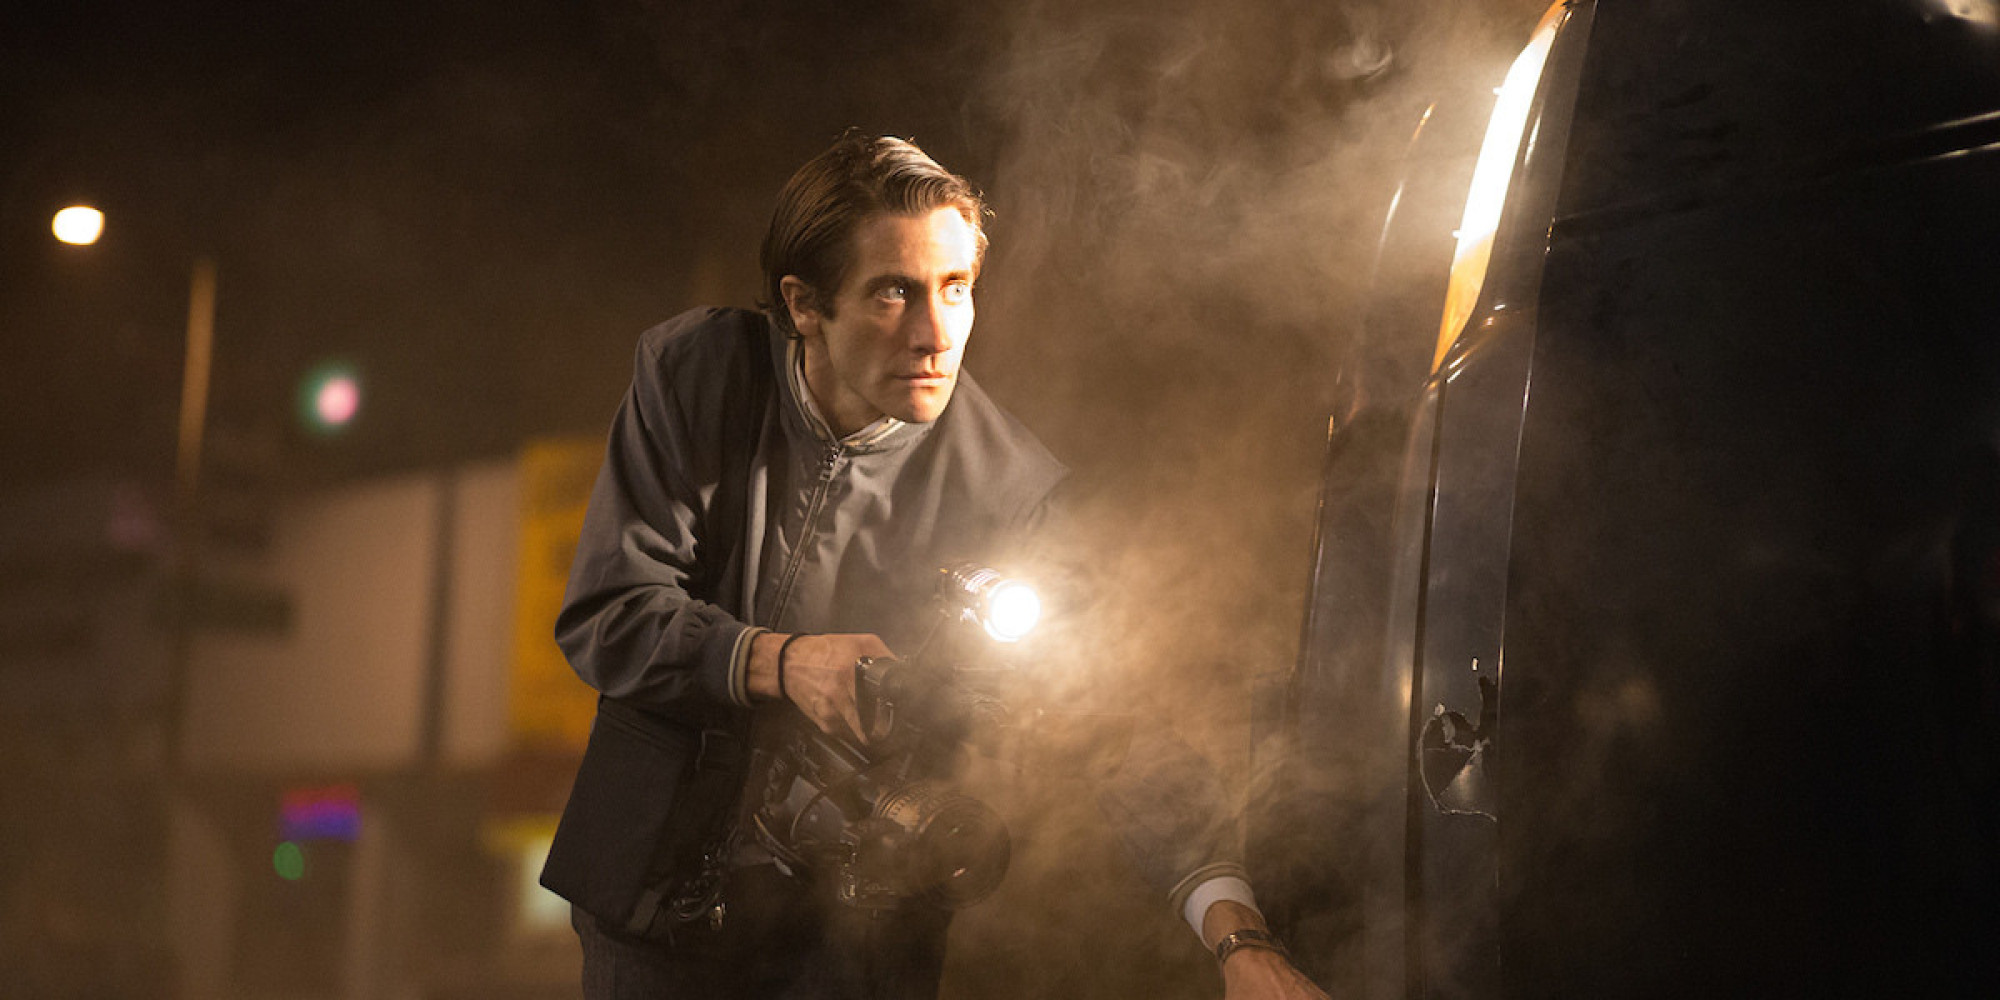 Still from Nightcrawler